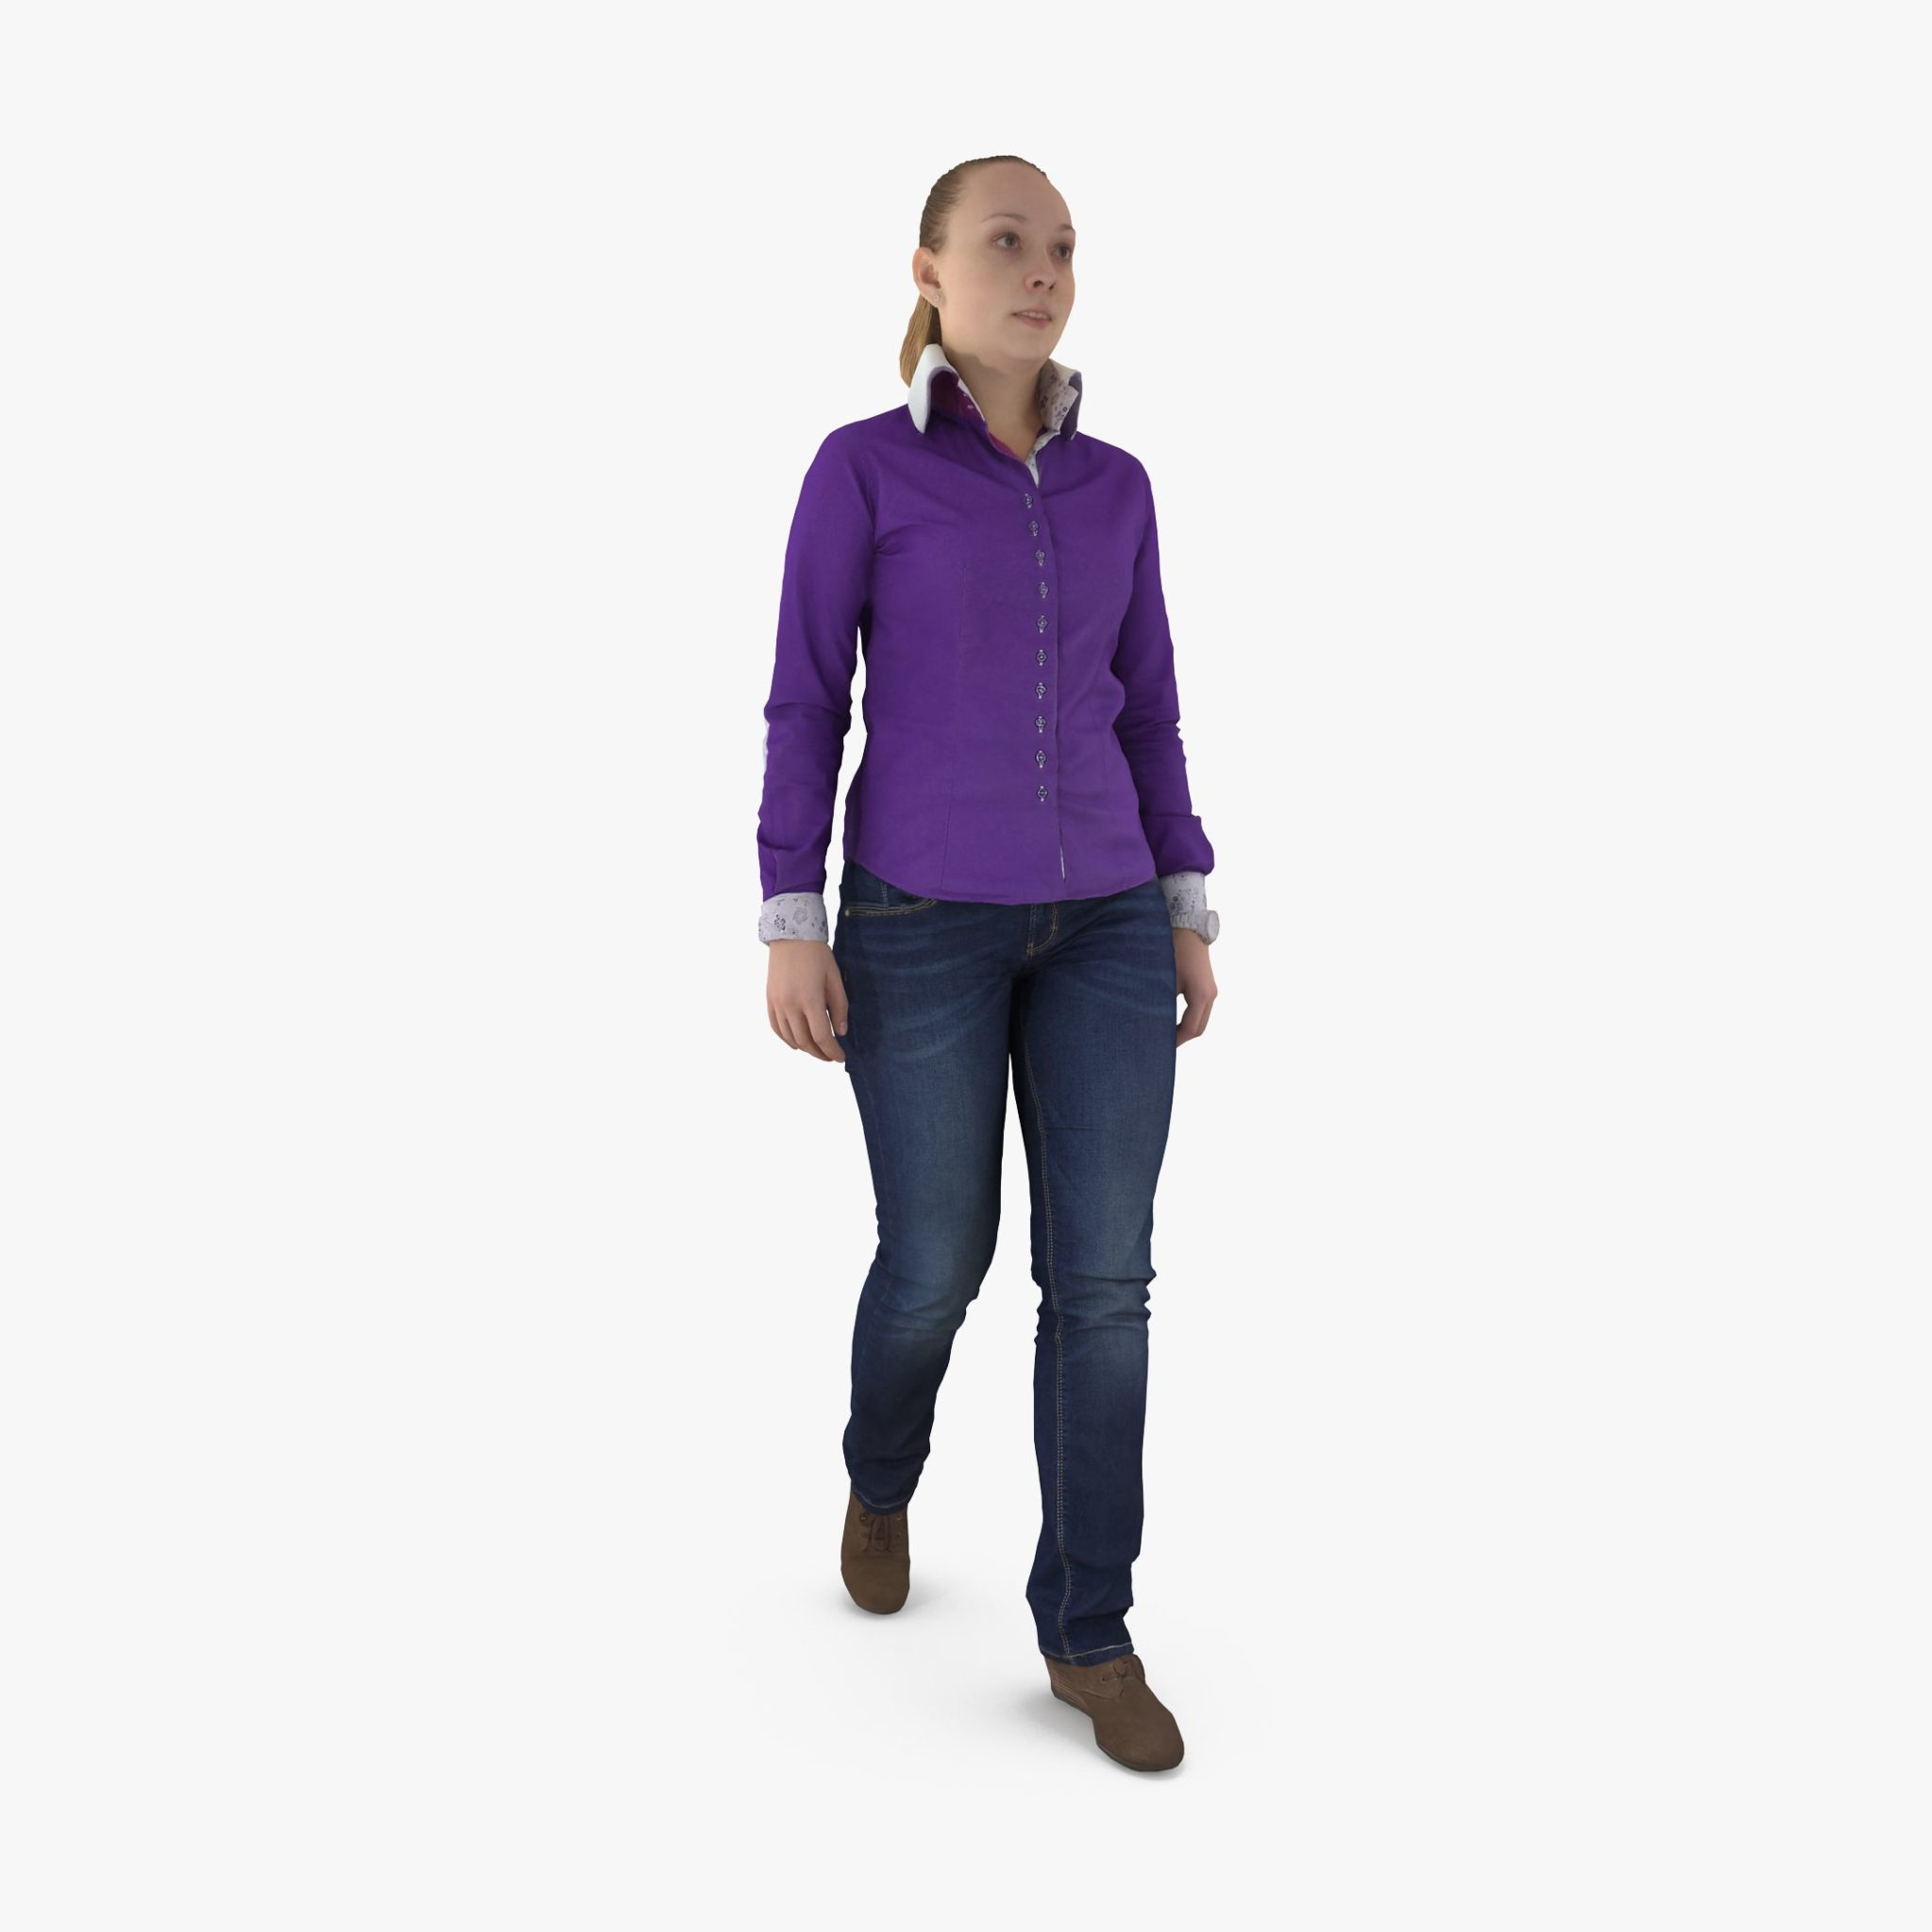 Casual Female Walking 3D Model | 3DTree Scanning Studio